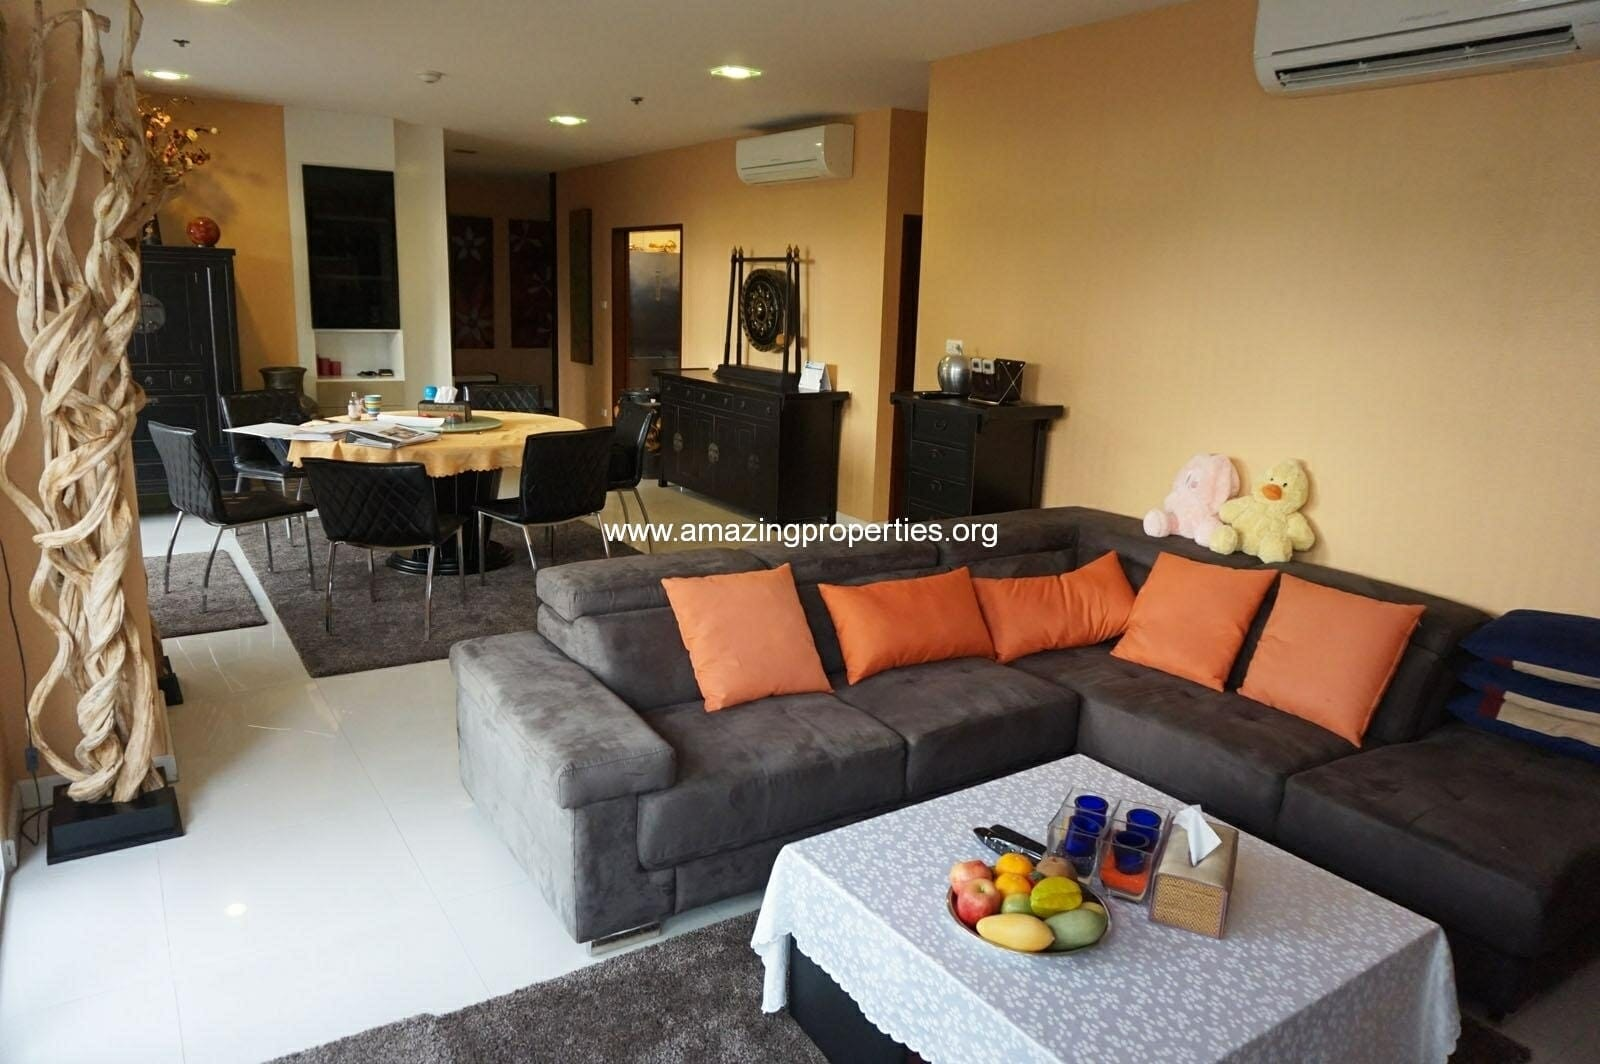 2 bedroom Condo for Sale with Tropical Garden